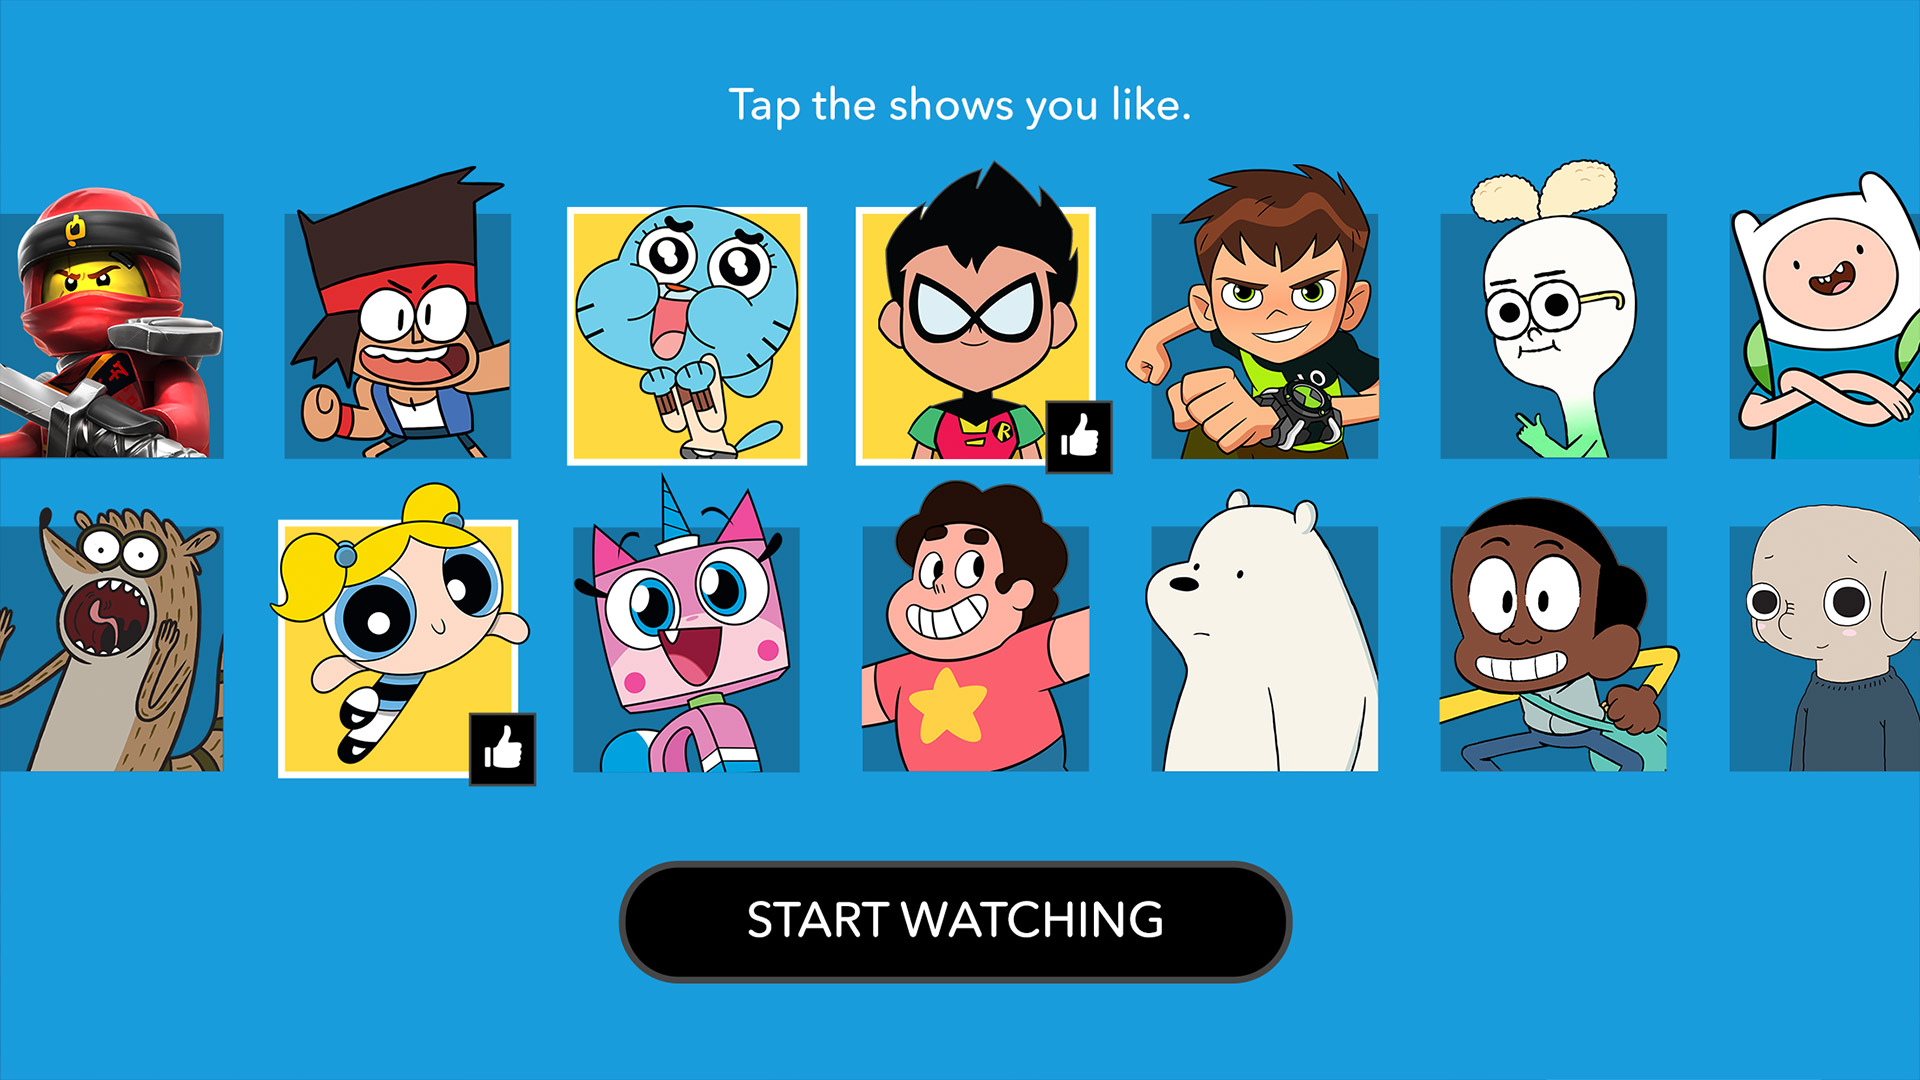 Cartoon Network App – Watch Full Episodes of Your Favorite Shows